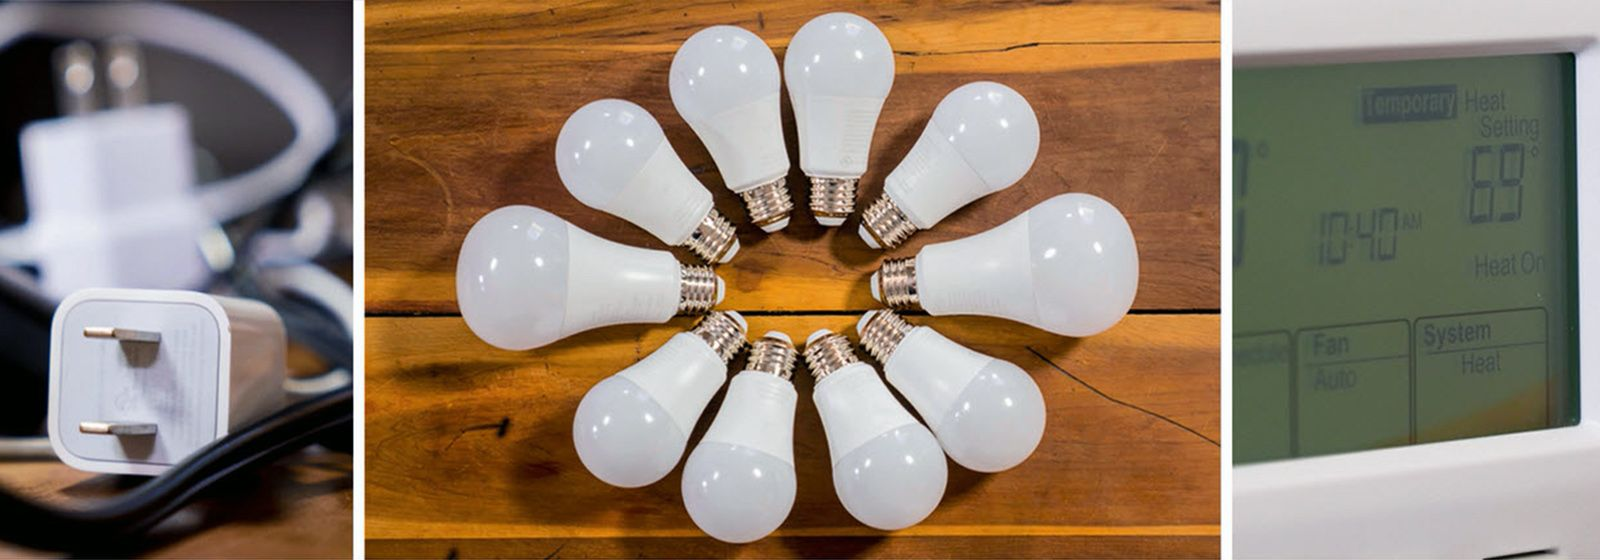 5 ways to save energy for under $50